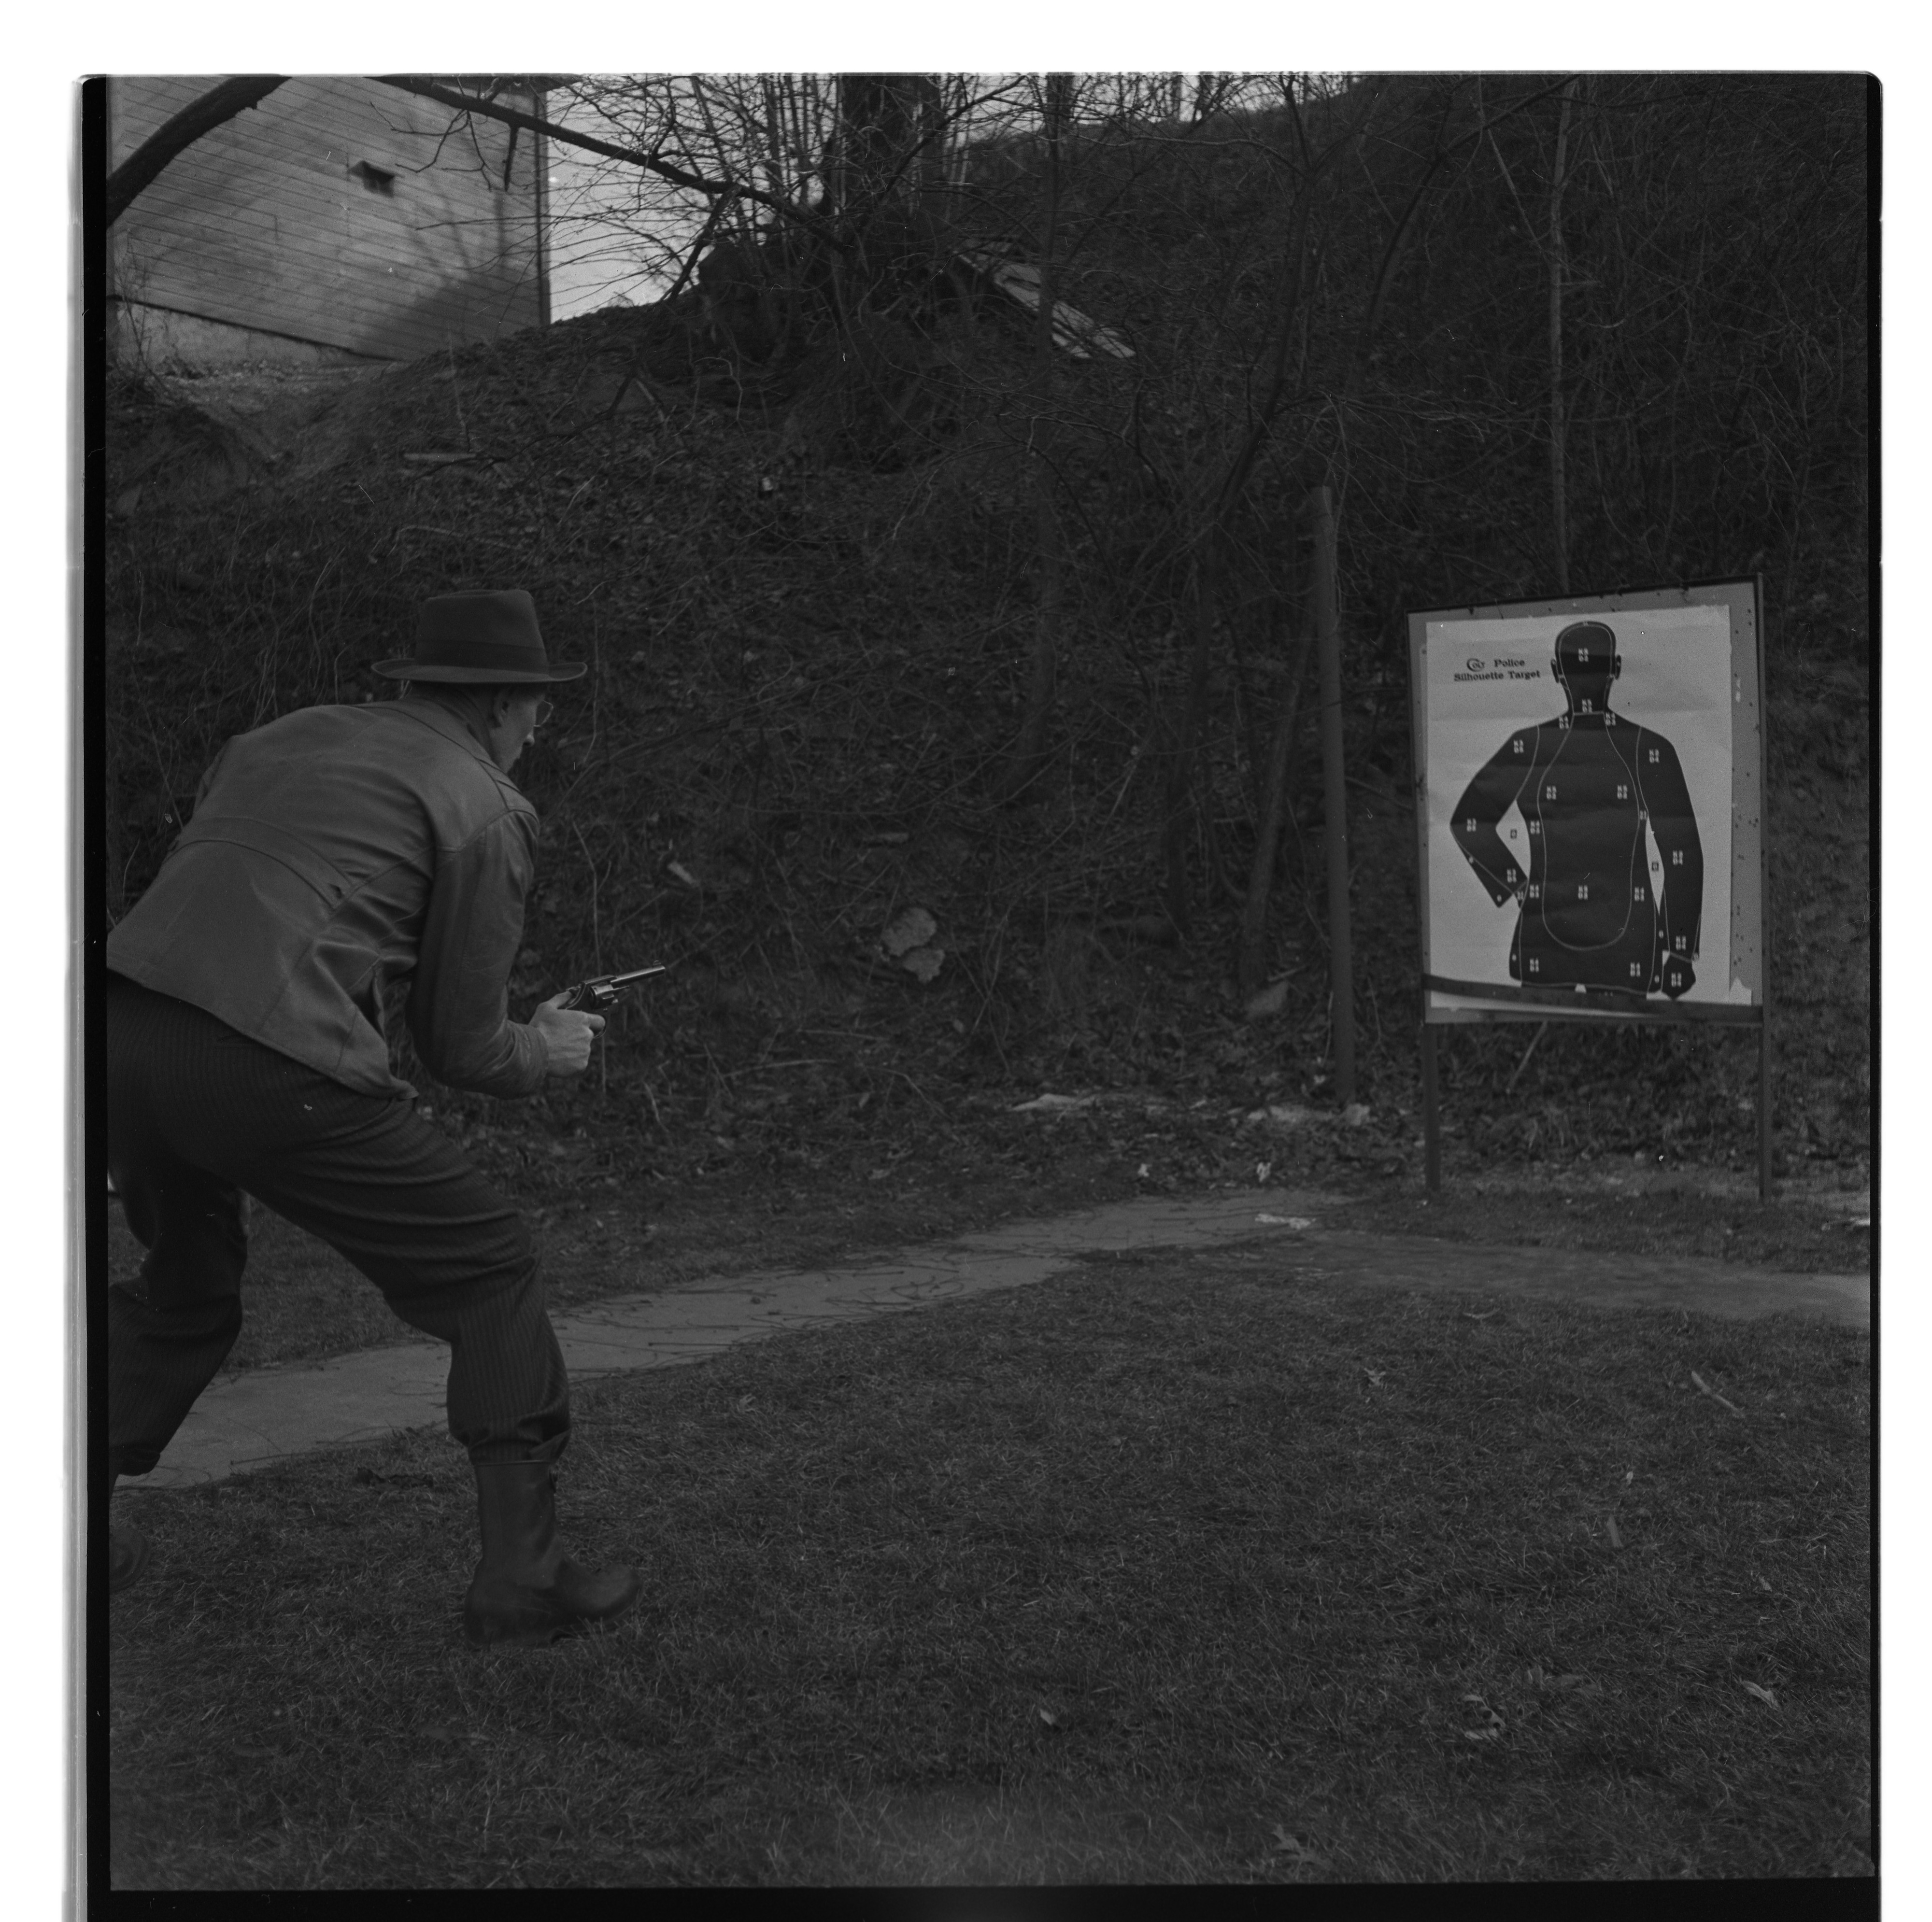 Ann Arbor Police In Target Practice At  Shooting Range, January 1950 image